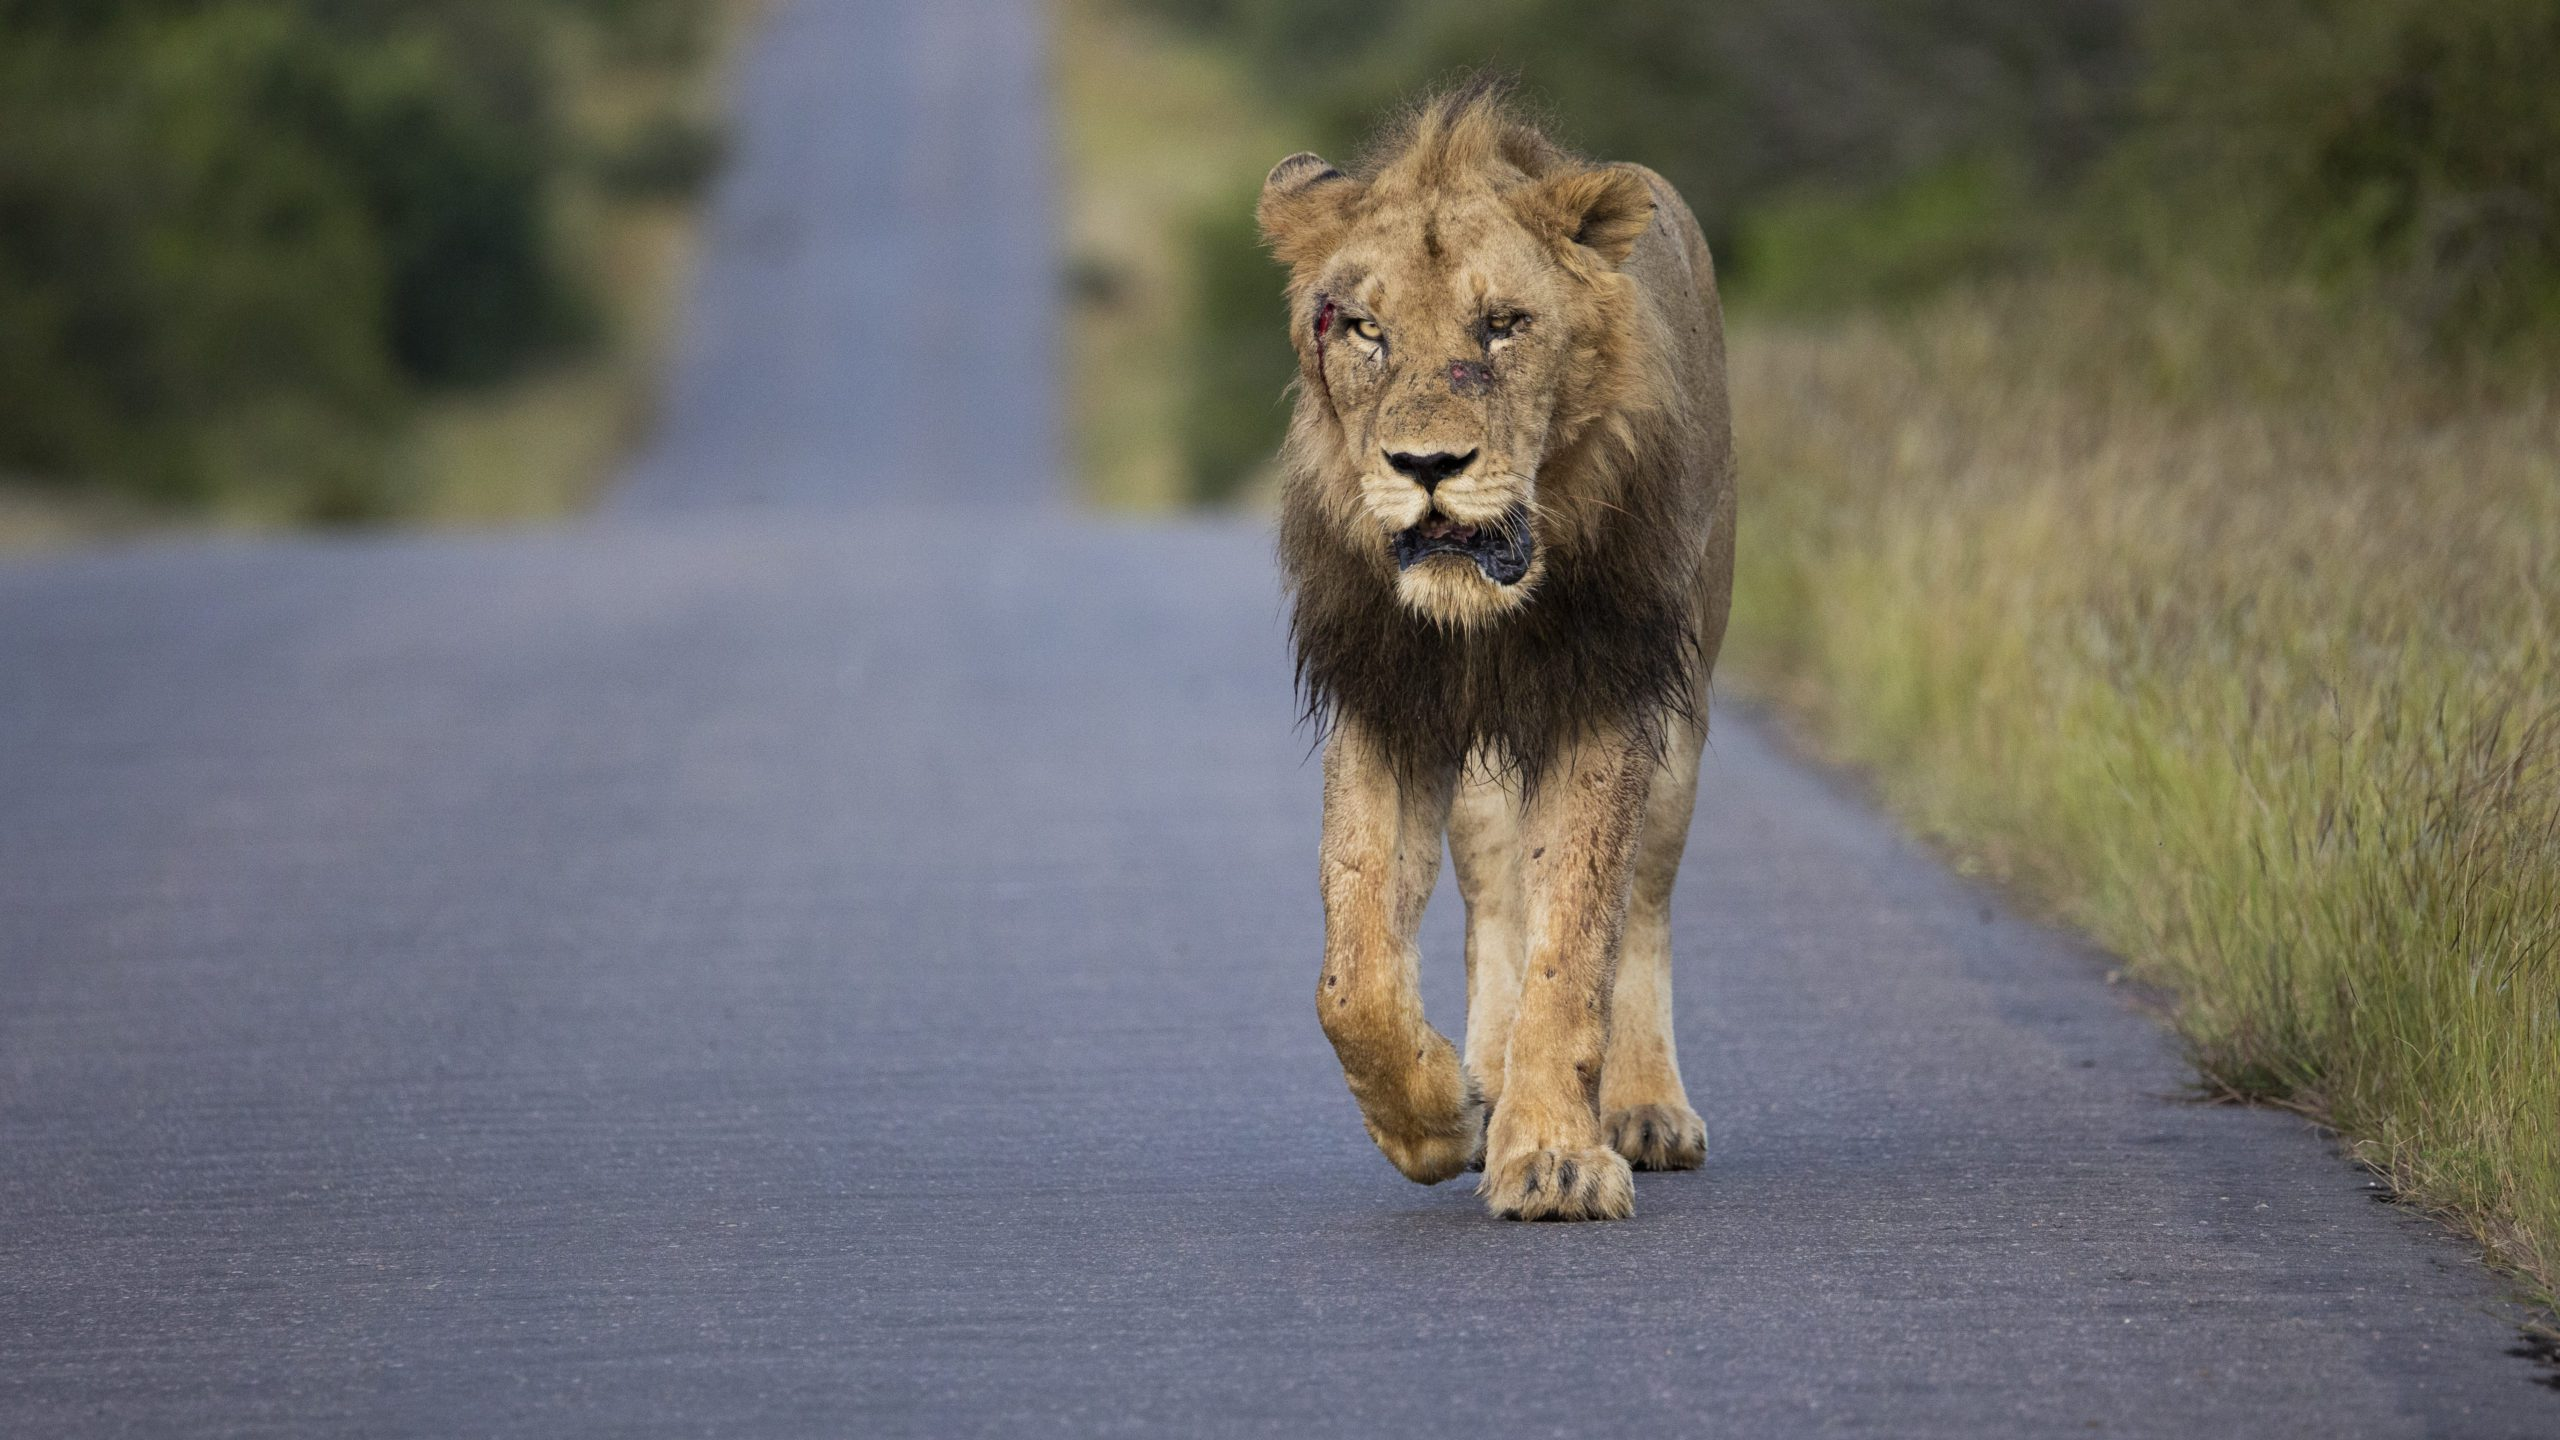 The Best Places To See Lions In Africa